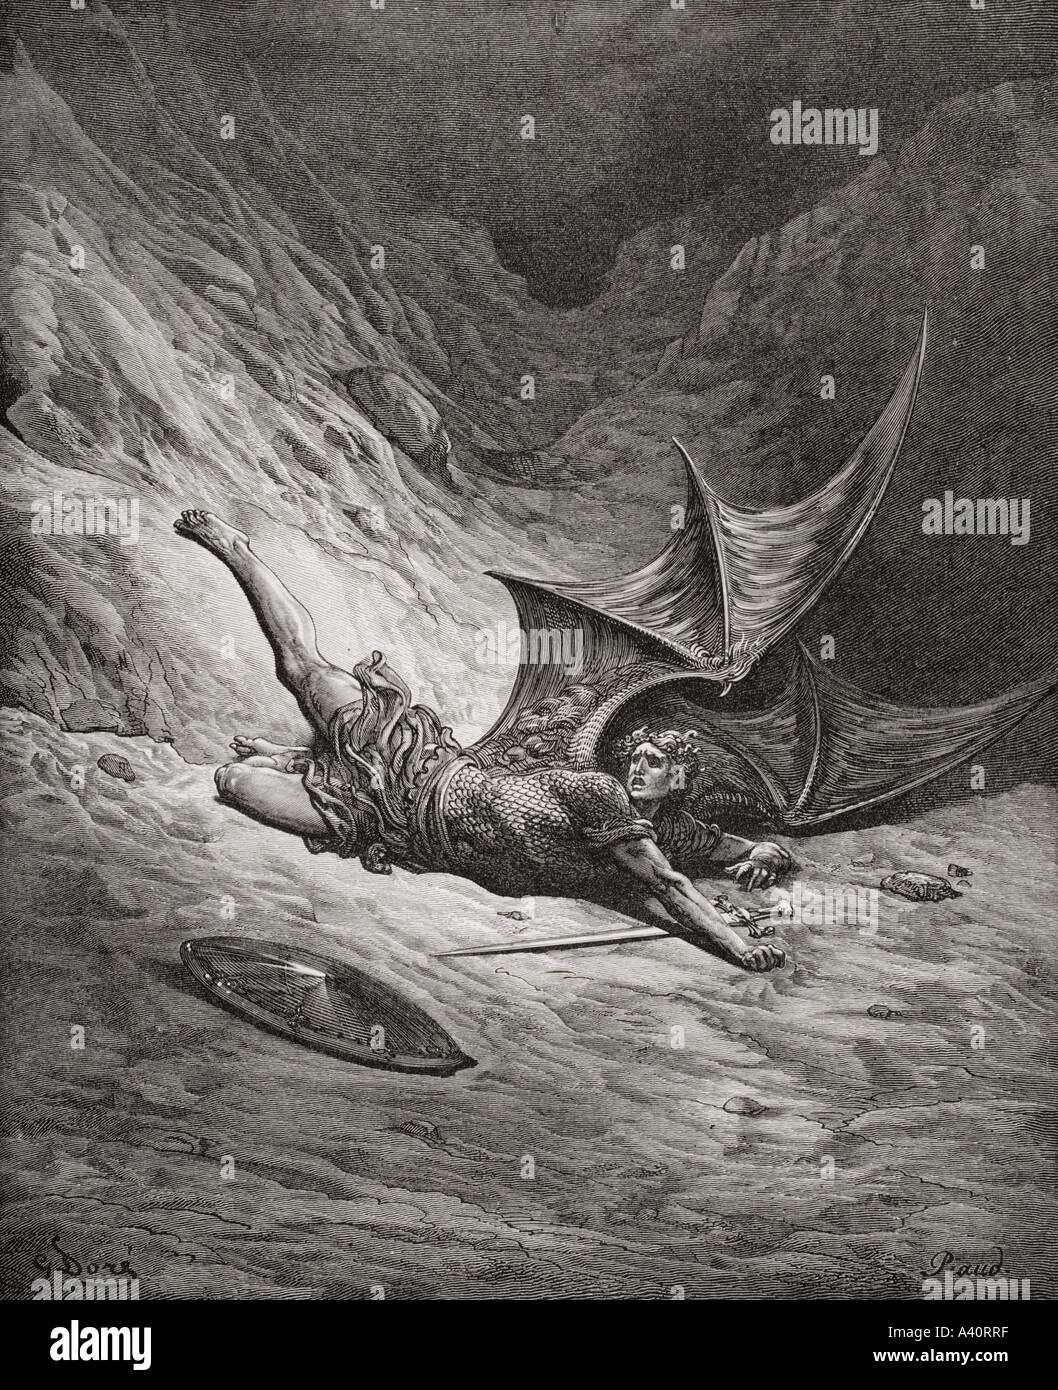 hero of paradise lost A research paper examining the hero problem in john milton's paradise lost within the context of william blake's infamous comment that milton 'was a true poet, and of the devil's party without knowing it'.